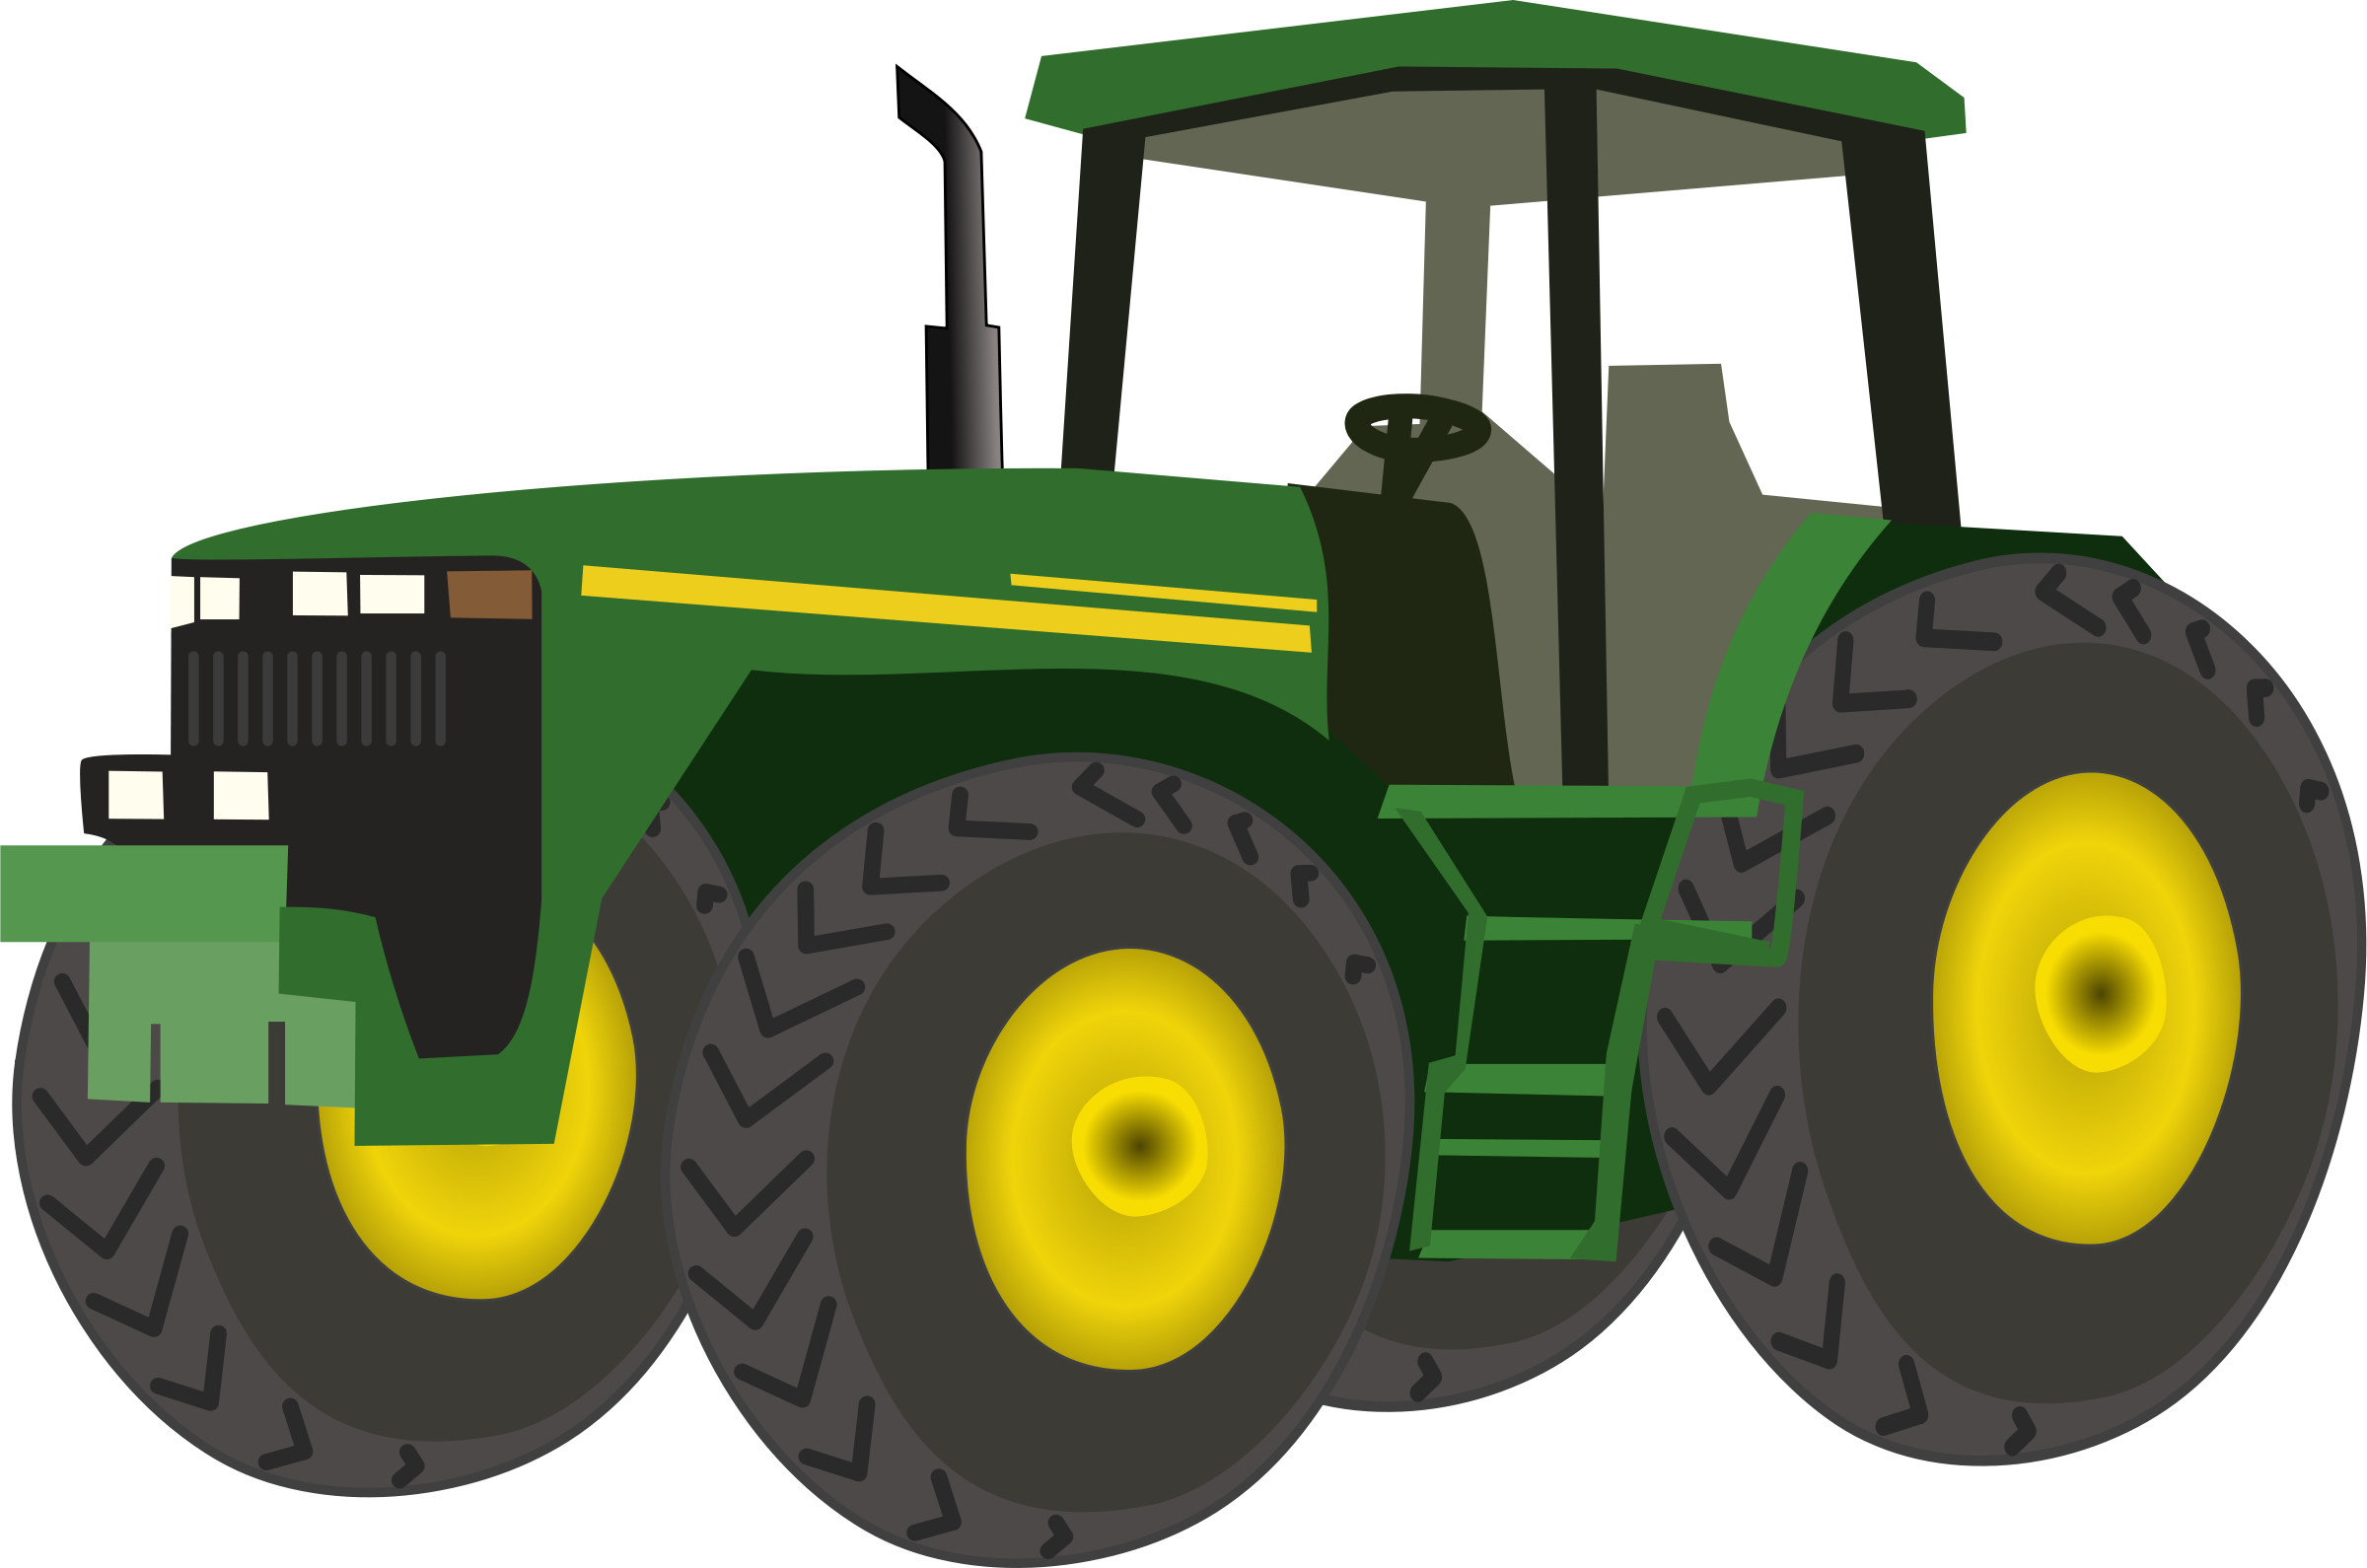 Red panda free images. Farmhouse clipart tractor